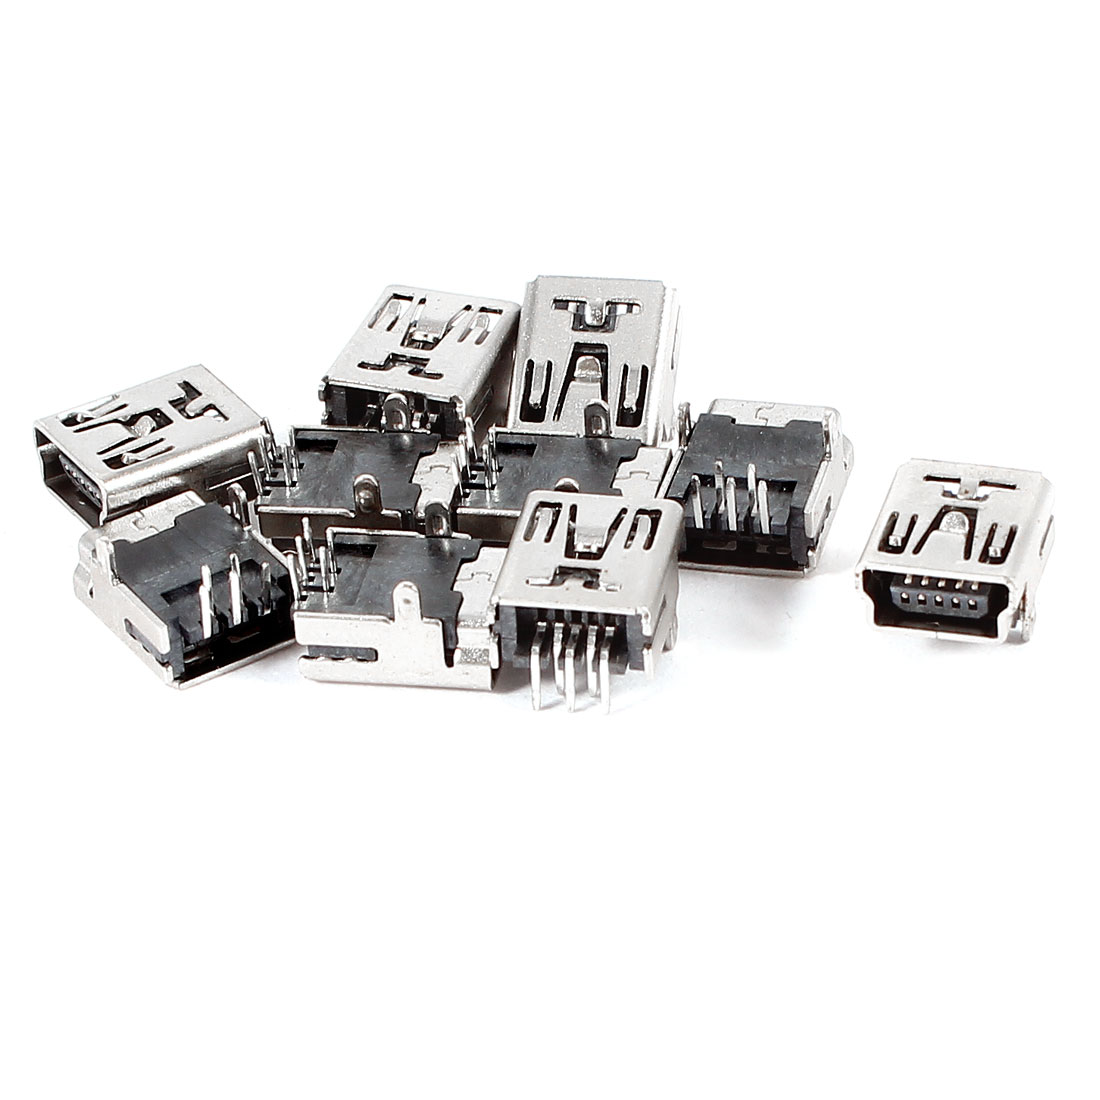 10 Pcs Right Angle PCB SMT Mini USB Type B 5Pin Female Connector